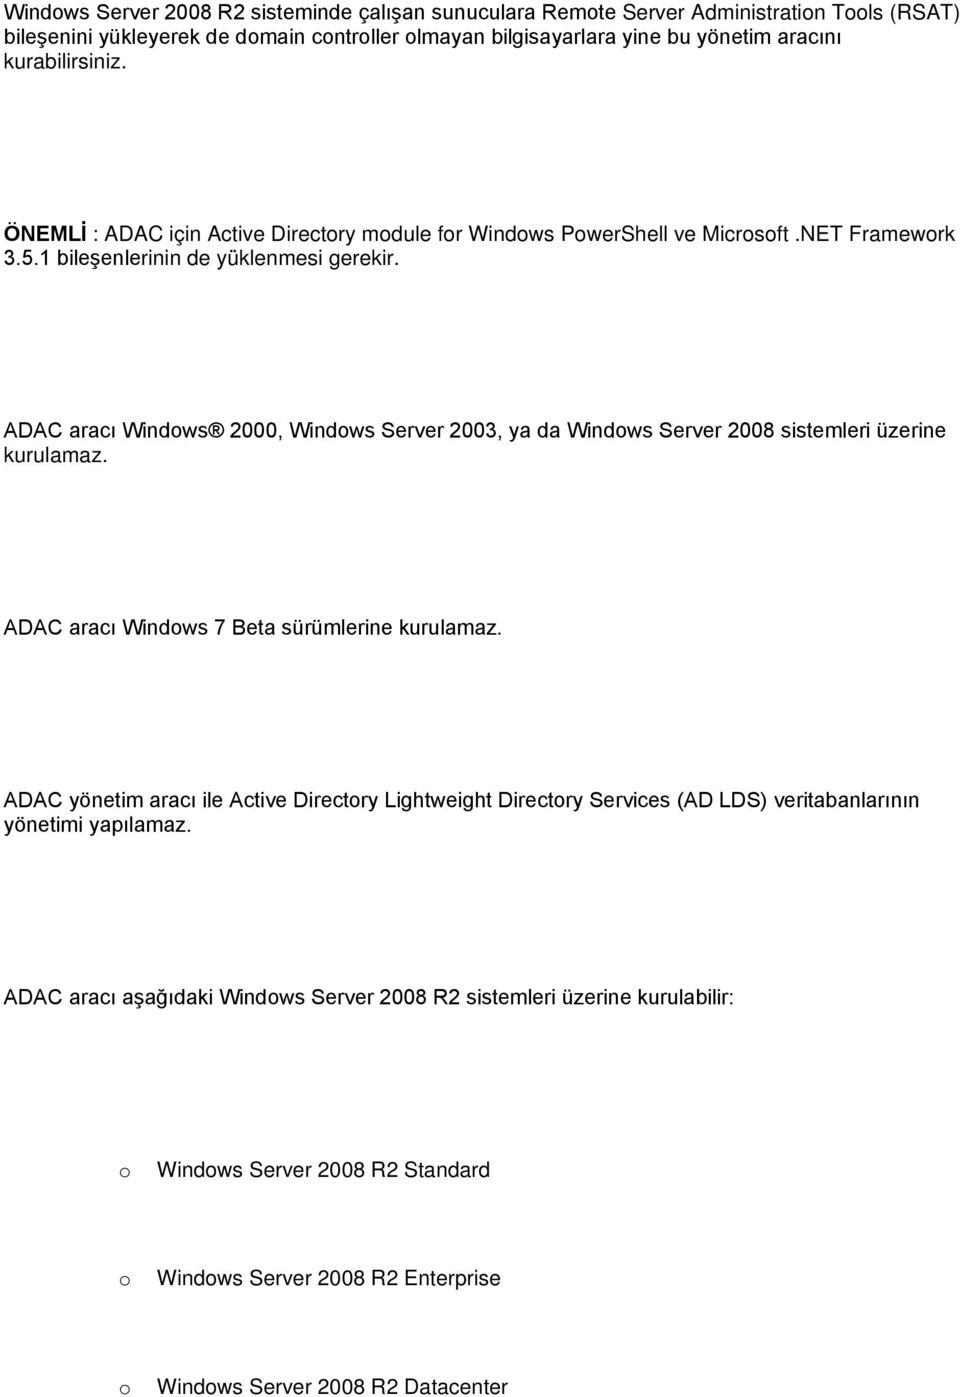 ADAC aracı Windows 2000, Windows Server 2003, ya da Windows Server 2008 sistemleri üzerine kurulamaz. ADAC aracı Windows 7 Beta sürümlerine kurulamaz.